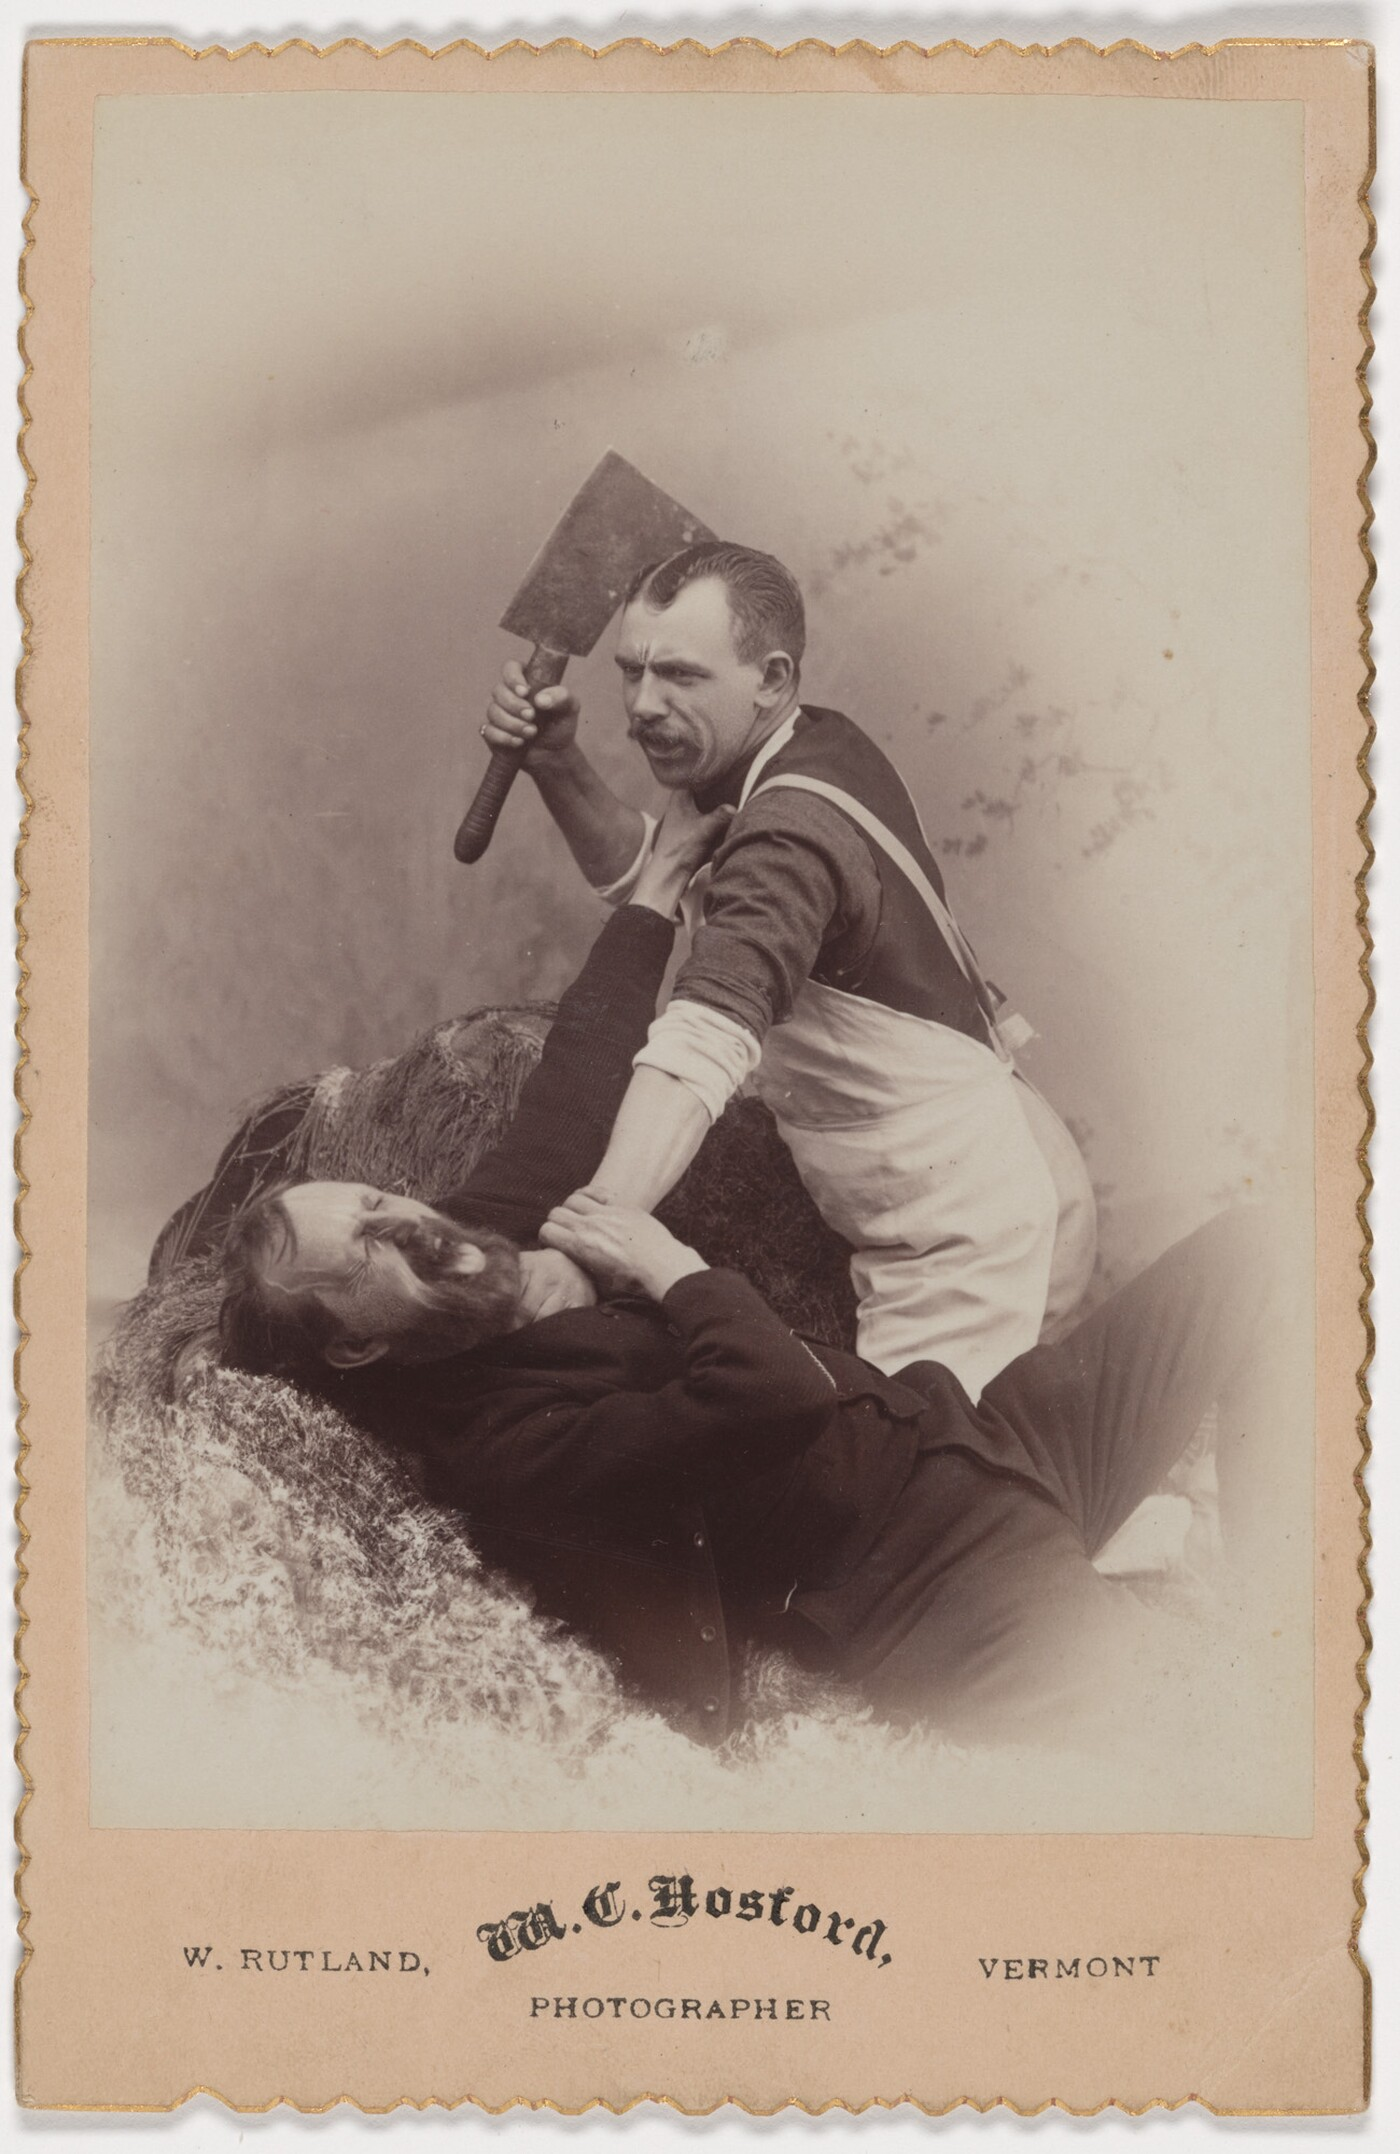 M.C. Hosford, [Getting the cleaver], 1880s, albumen silver print